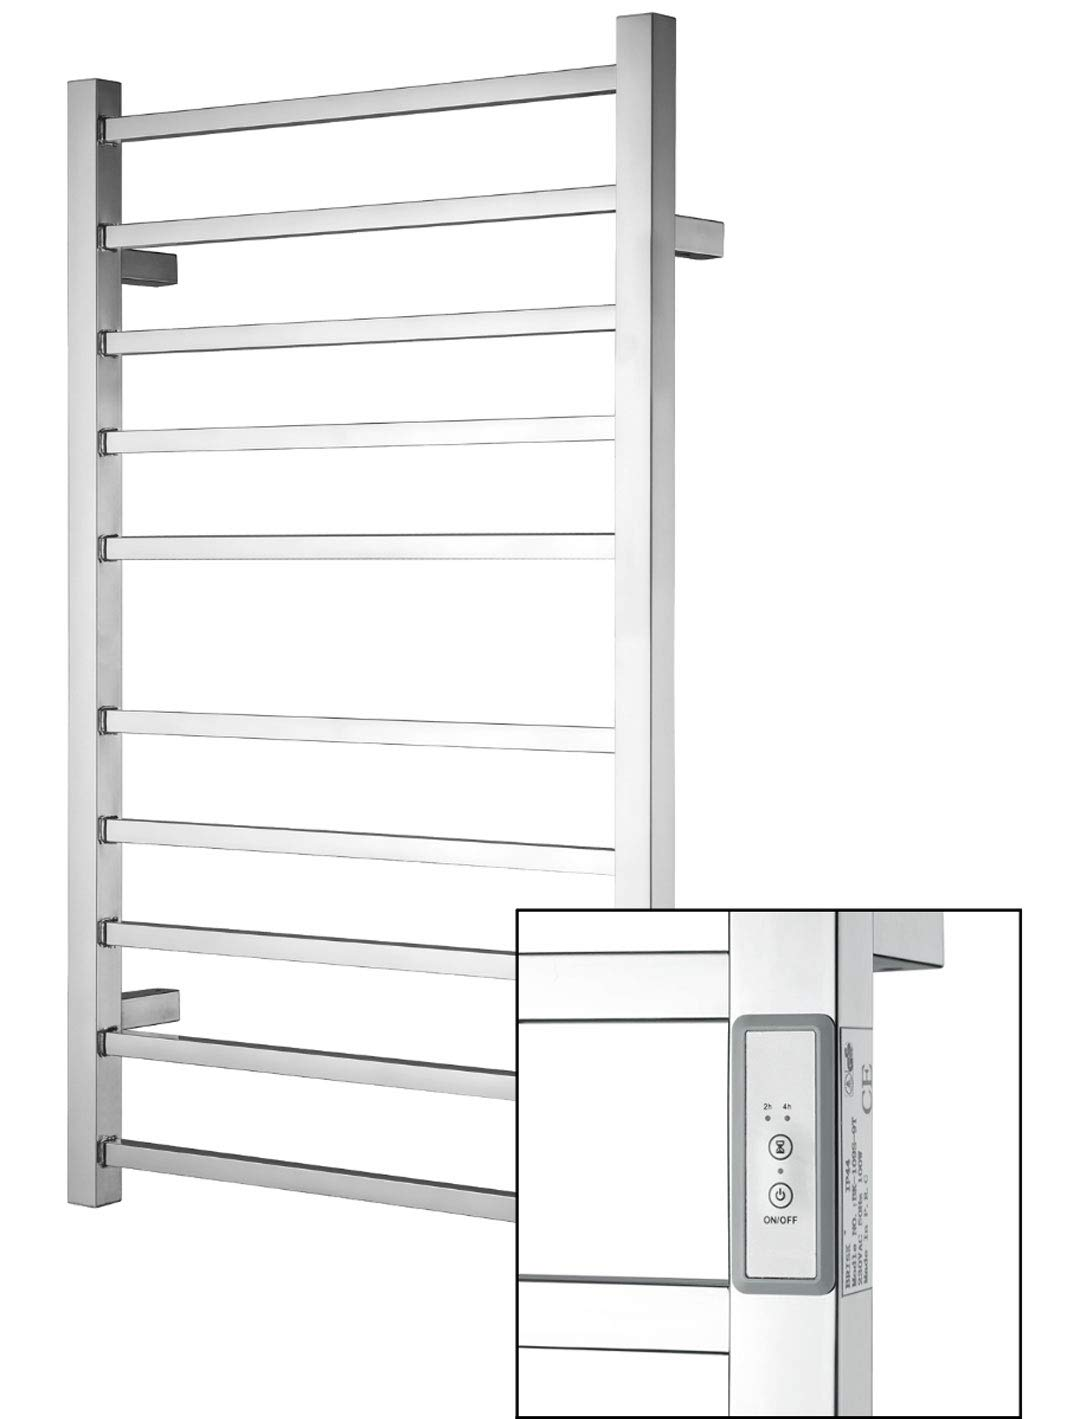 Towel Warmer   Built-in Timer with Led Indicators   3 Timer Modes: ON/Off, 2 H, 4 H   Wall Mounted   10 Bars   High Polish Chrome Stainless Steel